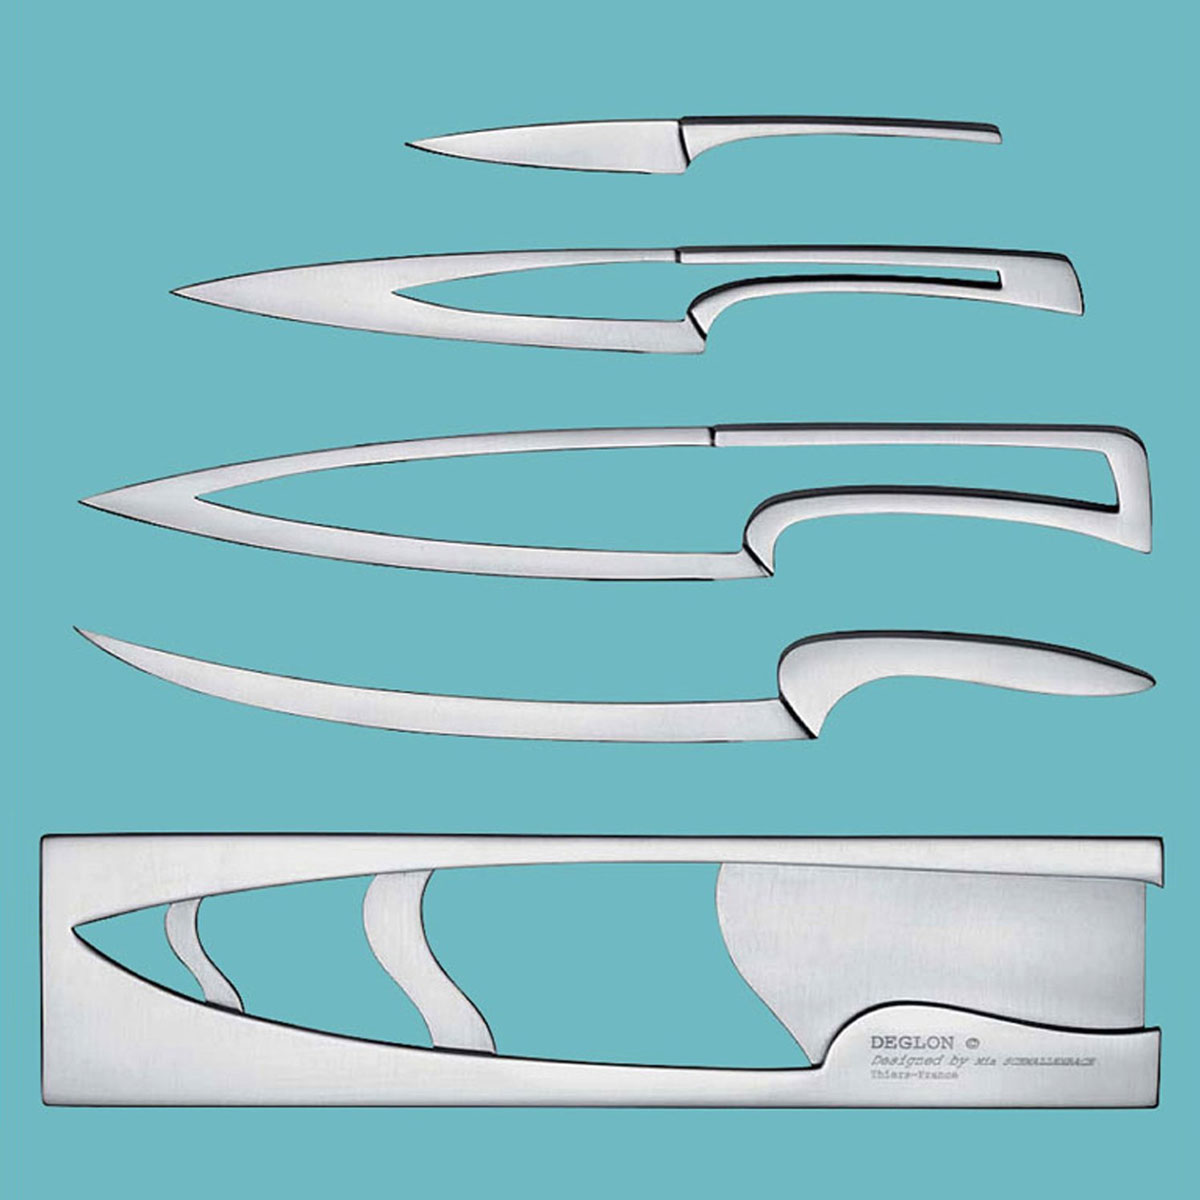 Contemporary Cool Kitchen Knife Sets Deglon Meeting Nested Set S Intended Design Ideas